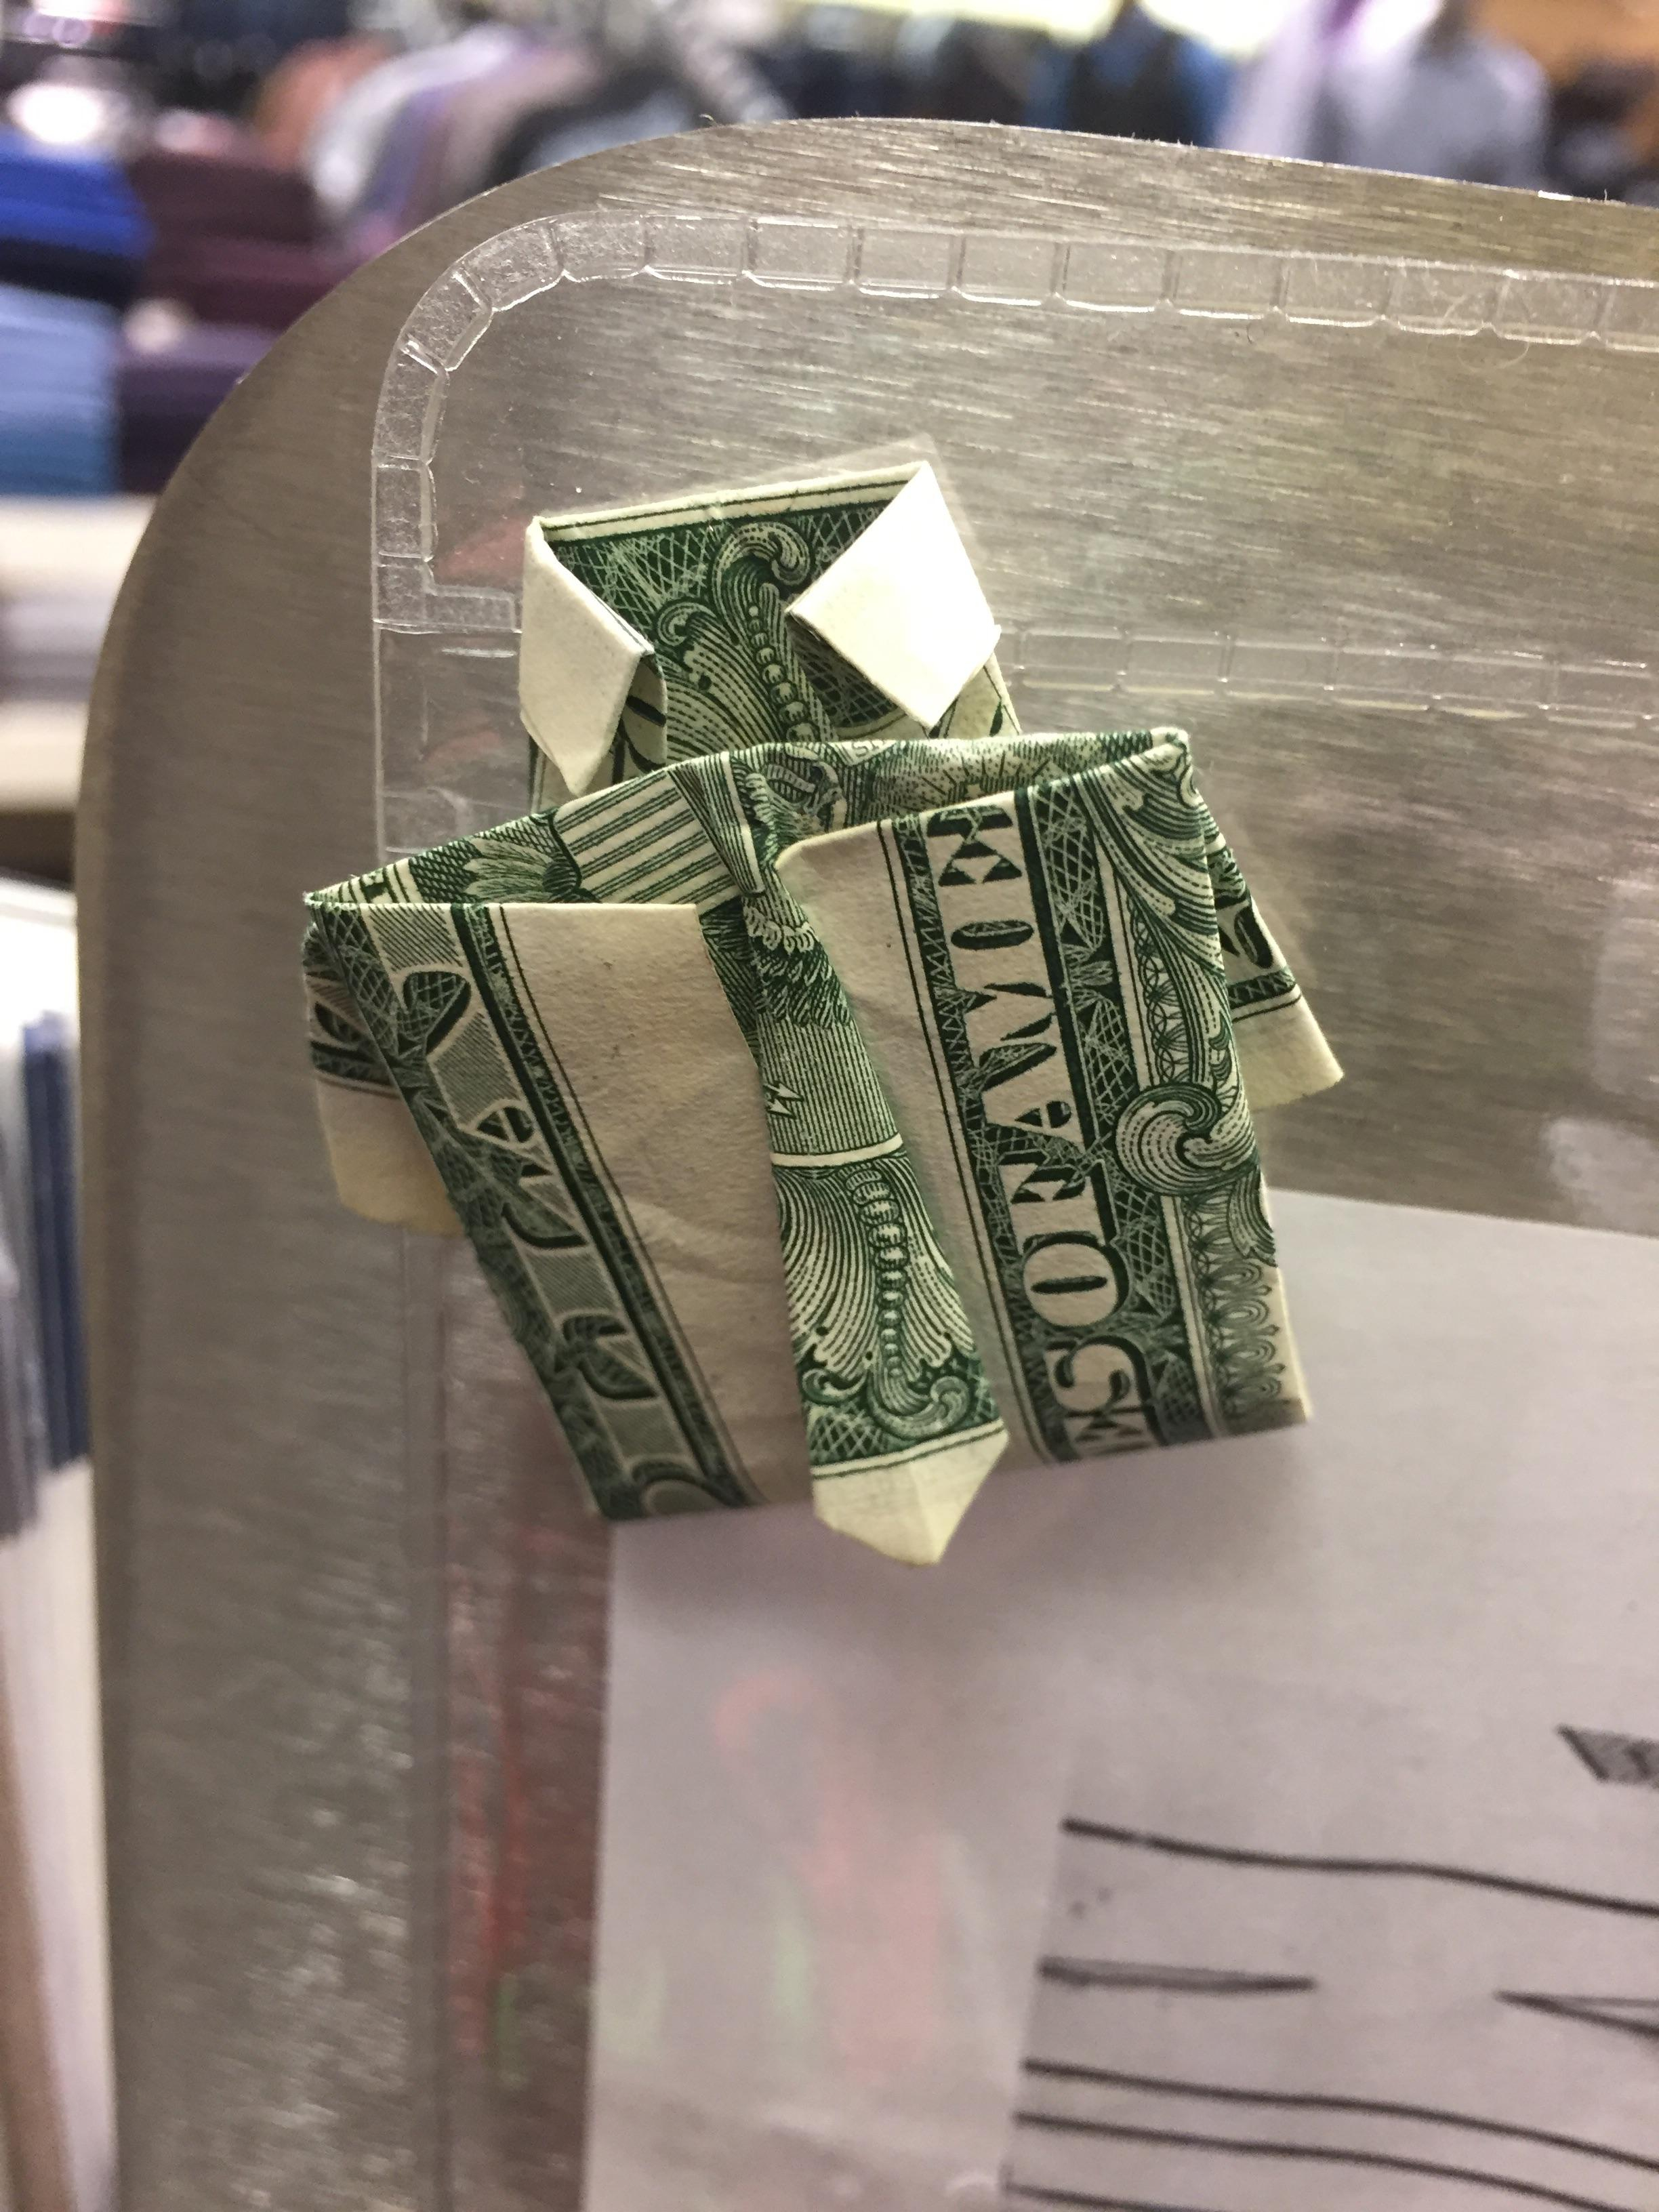 Dollar Bill Origami Shirt With Tie I Work At A Mens Store And Someone Was Able To Fold This Dollar